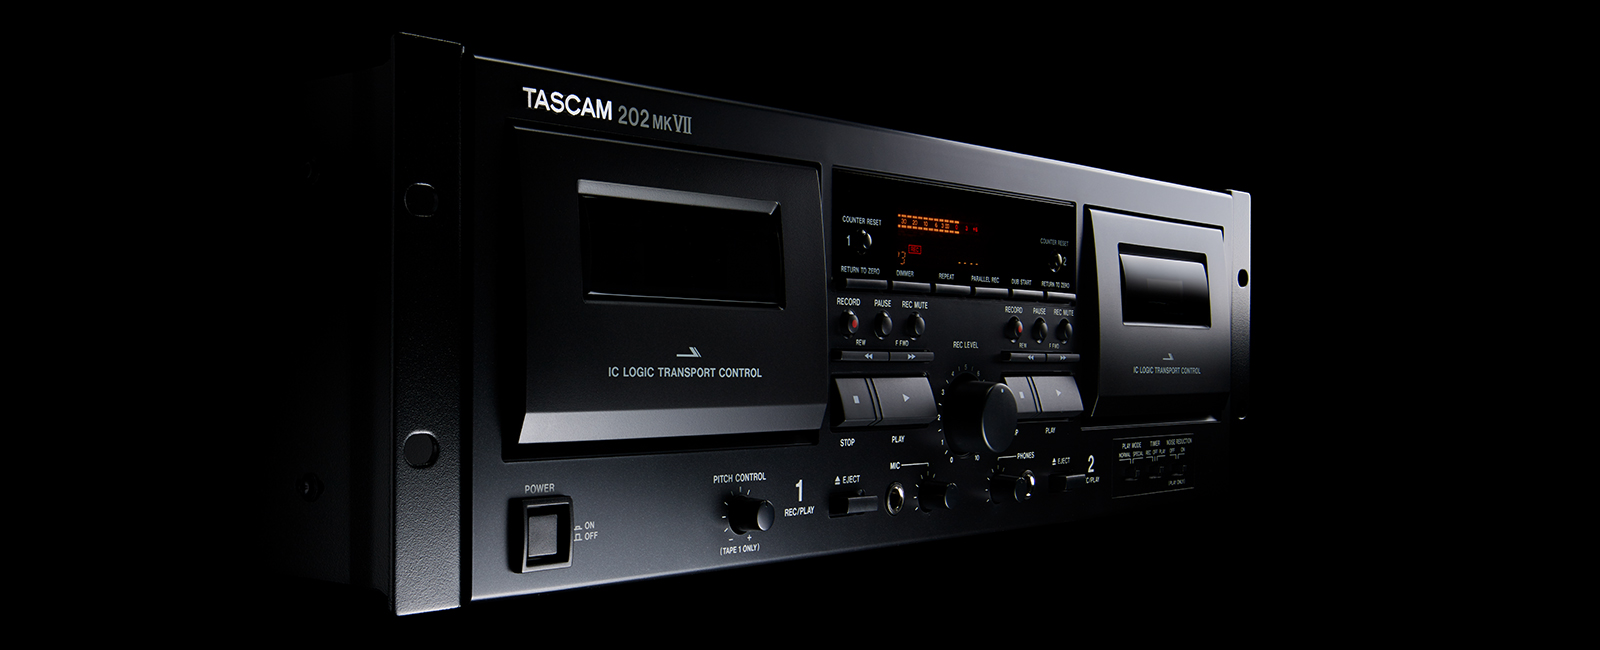 202MKVII | OVERVIEW | TASCAM - United States